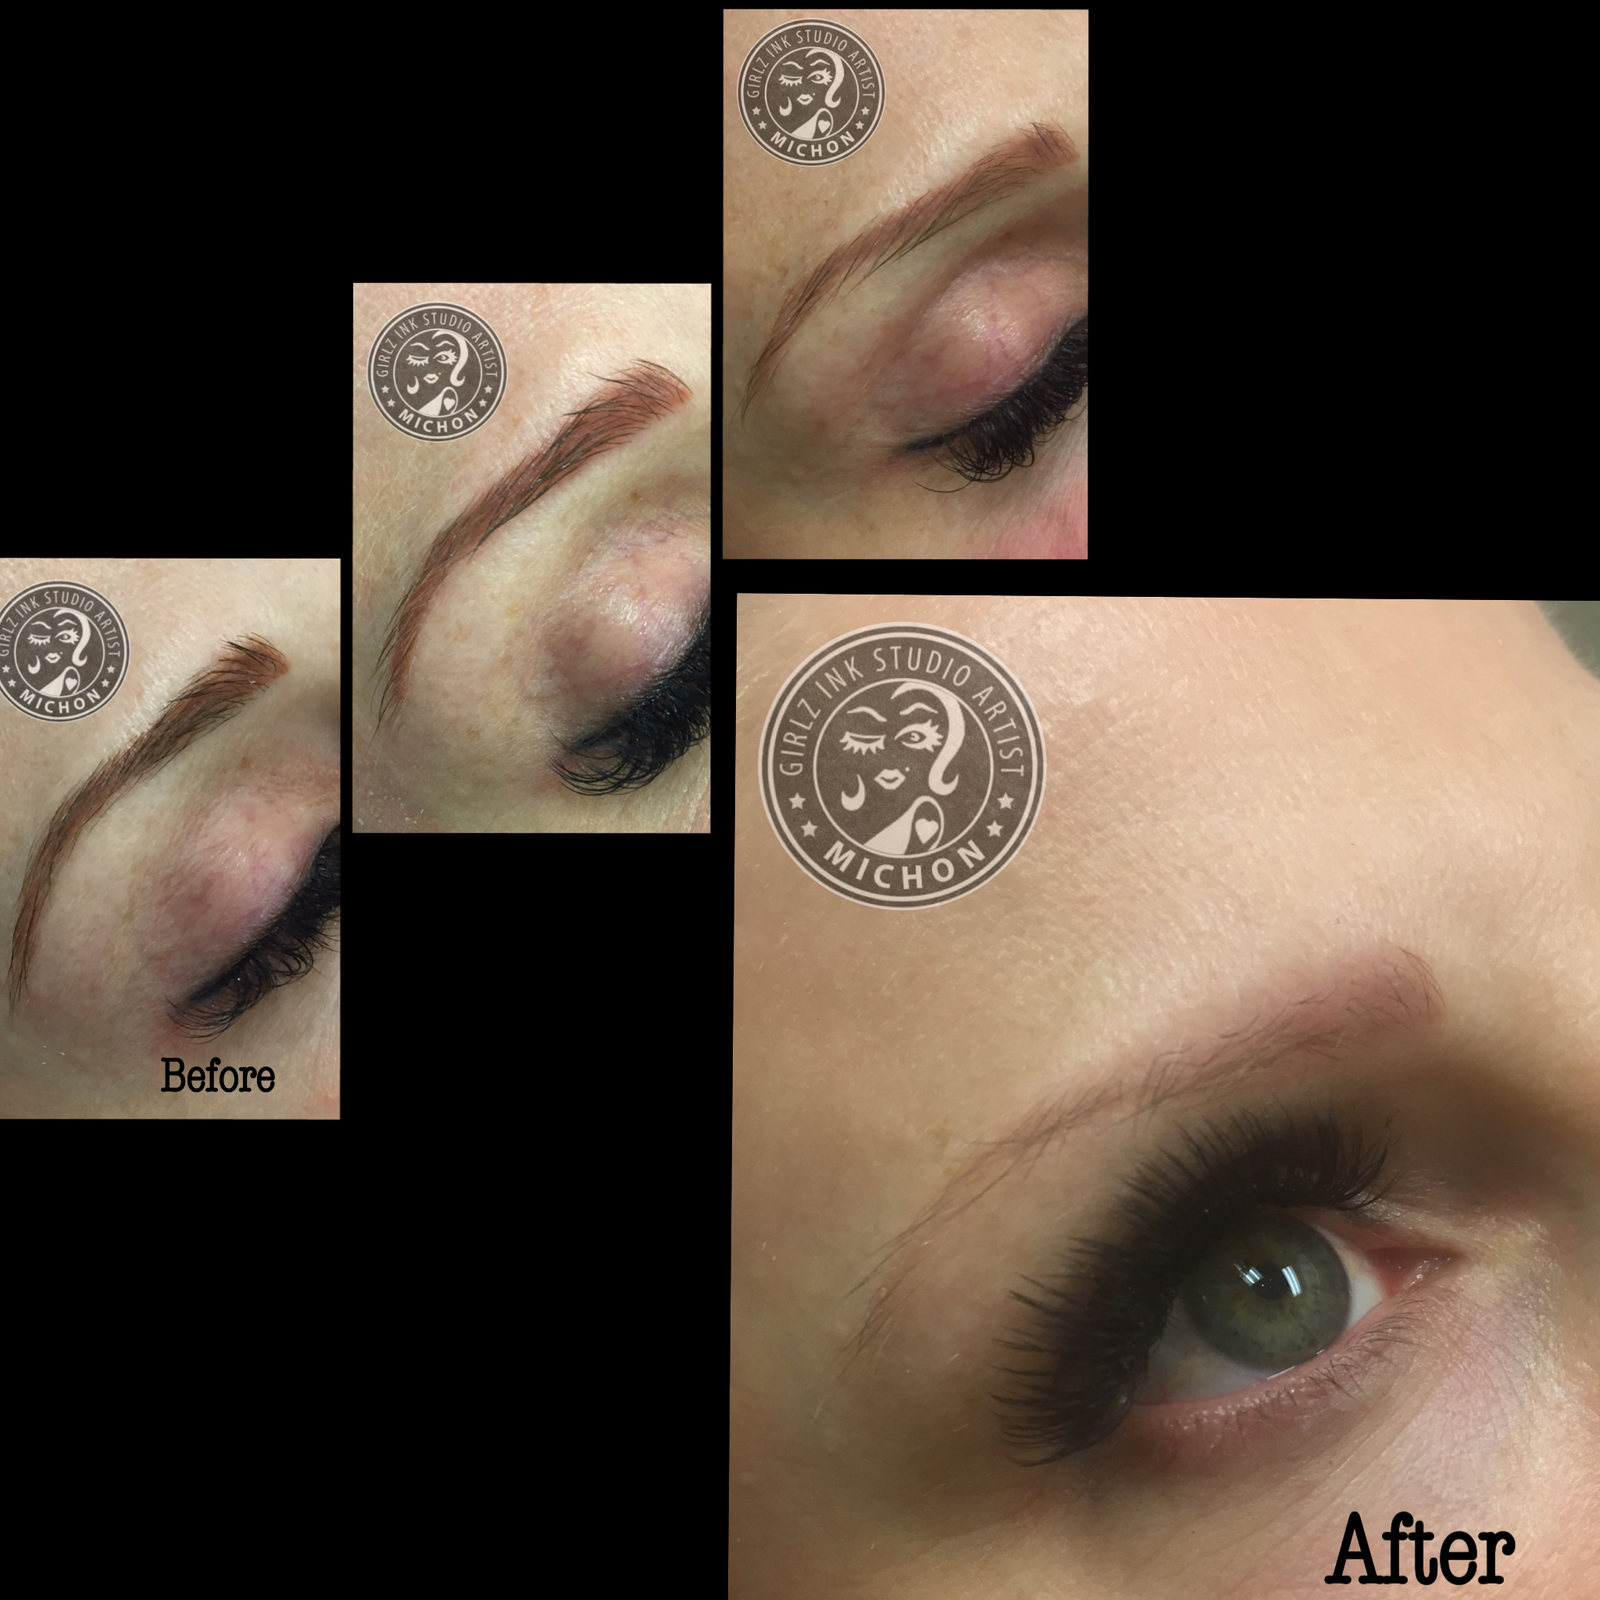 An amazing removal of red/orange permanent makeup eyebrows after 3 full sessions. Now she can have them re-done in a beautiful natural color and shape.